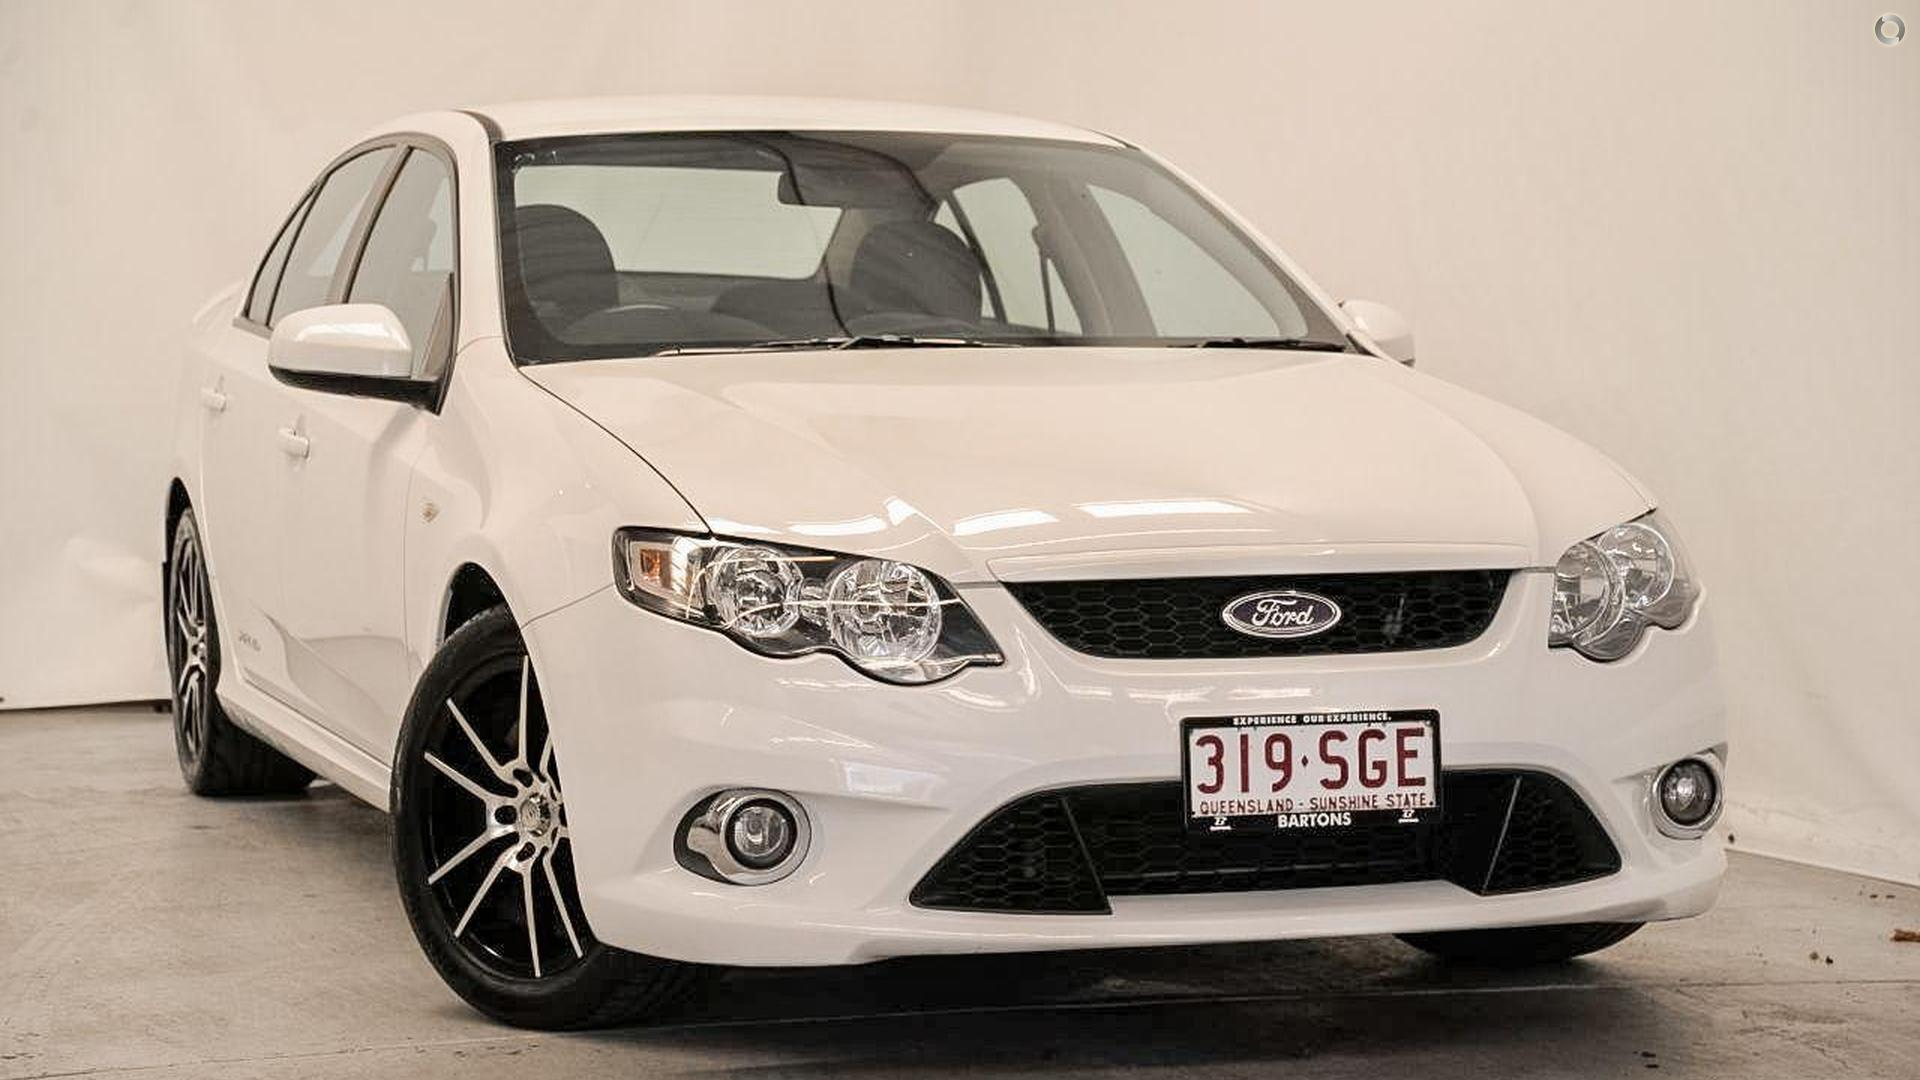 2011 Ford Falcon Xr6